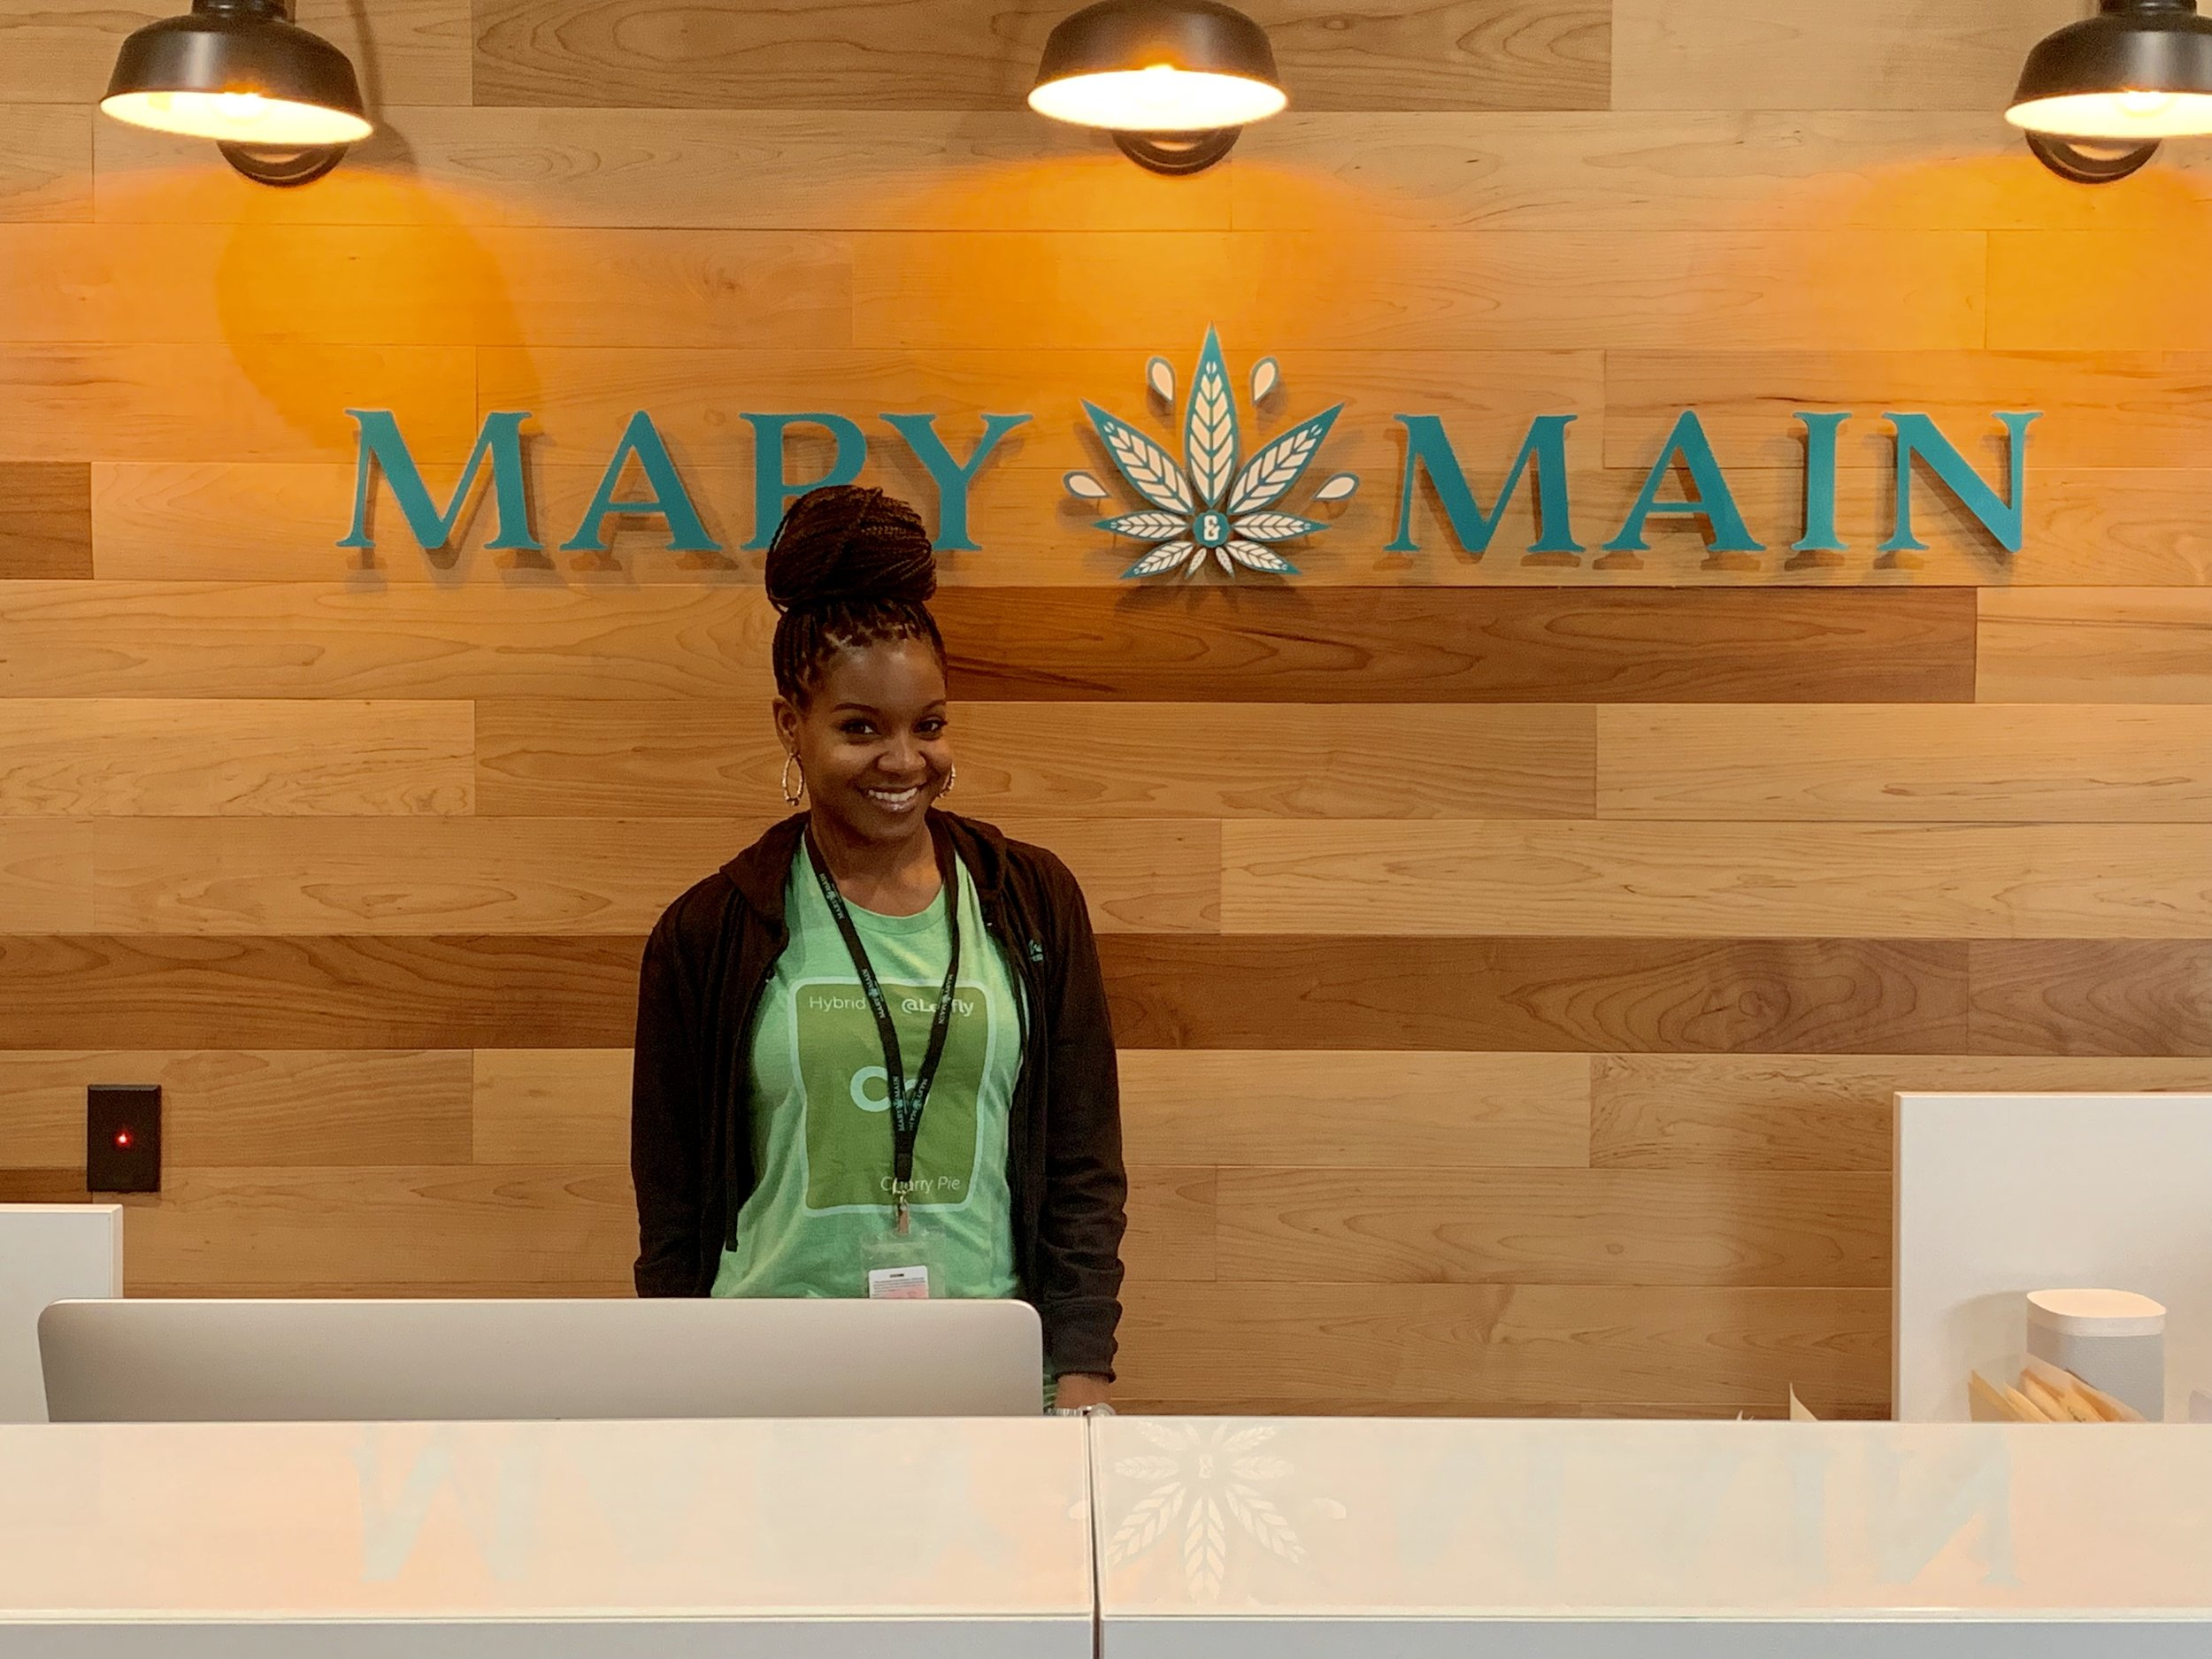 Mary and Main 8801 Hampton Mall Dr N, Capitol Heights, MD 20743